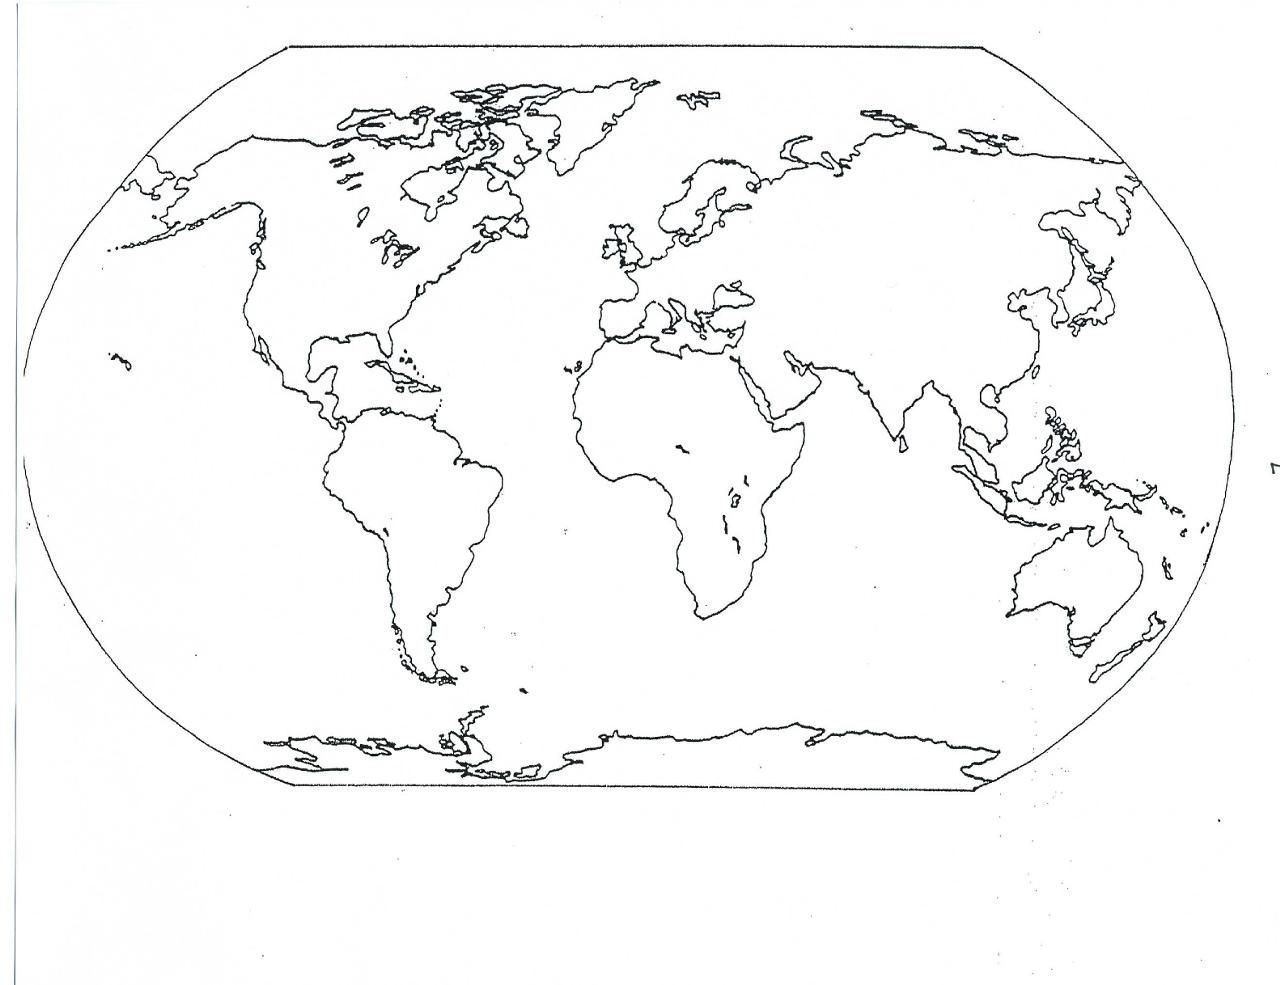 World Map Coloring Page Only Coloring Pages Blank World Map Free Printable World Map World Map Outline